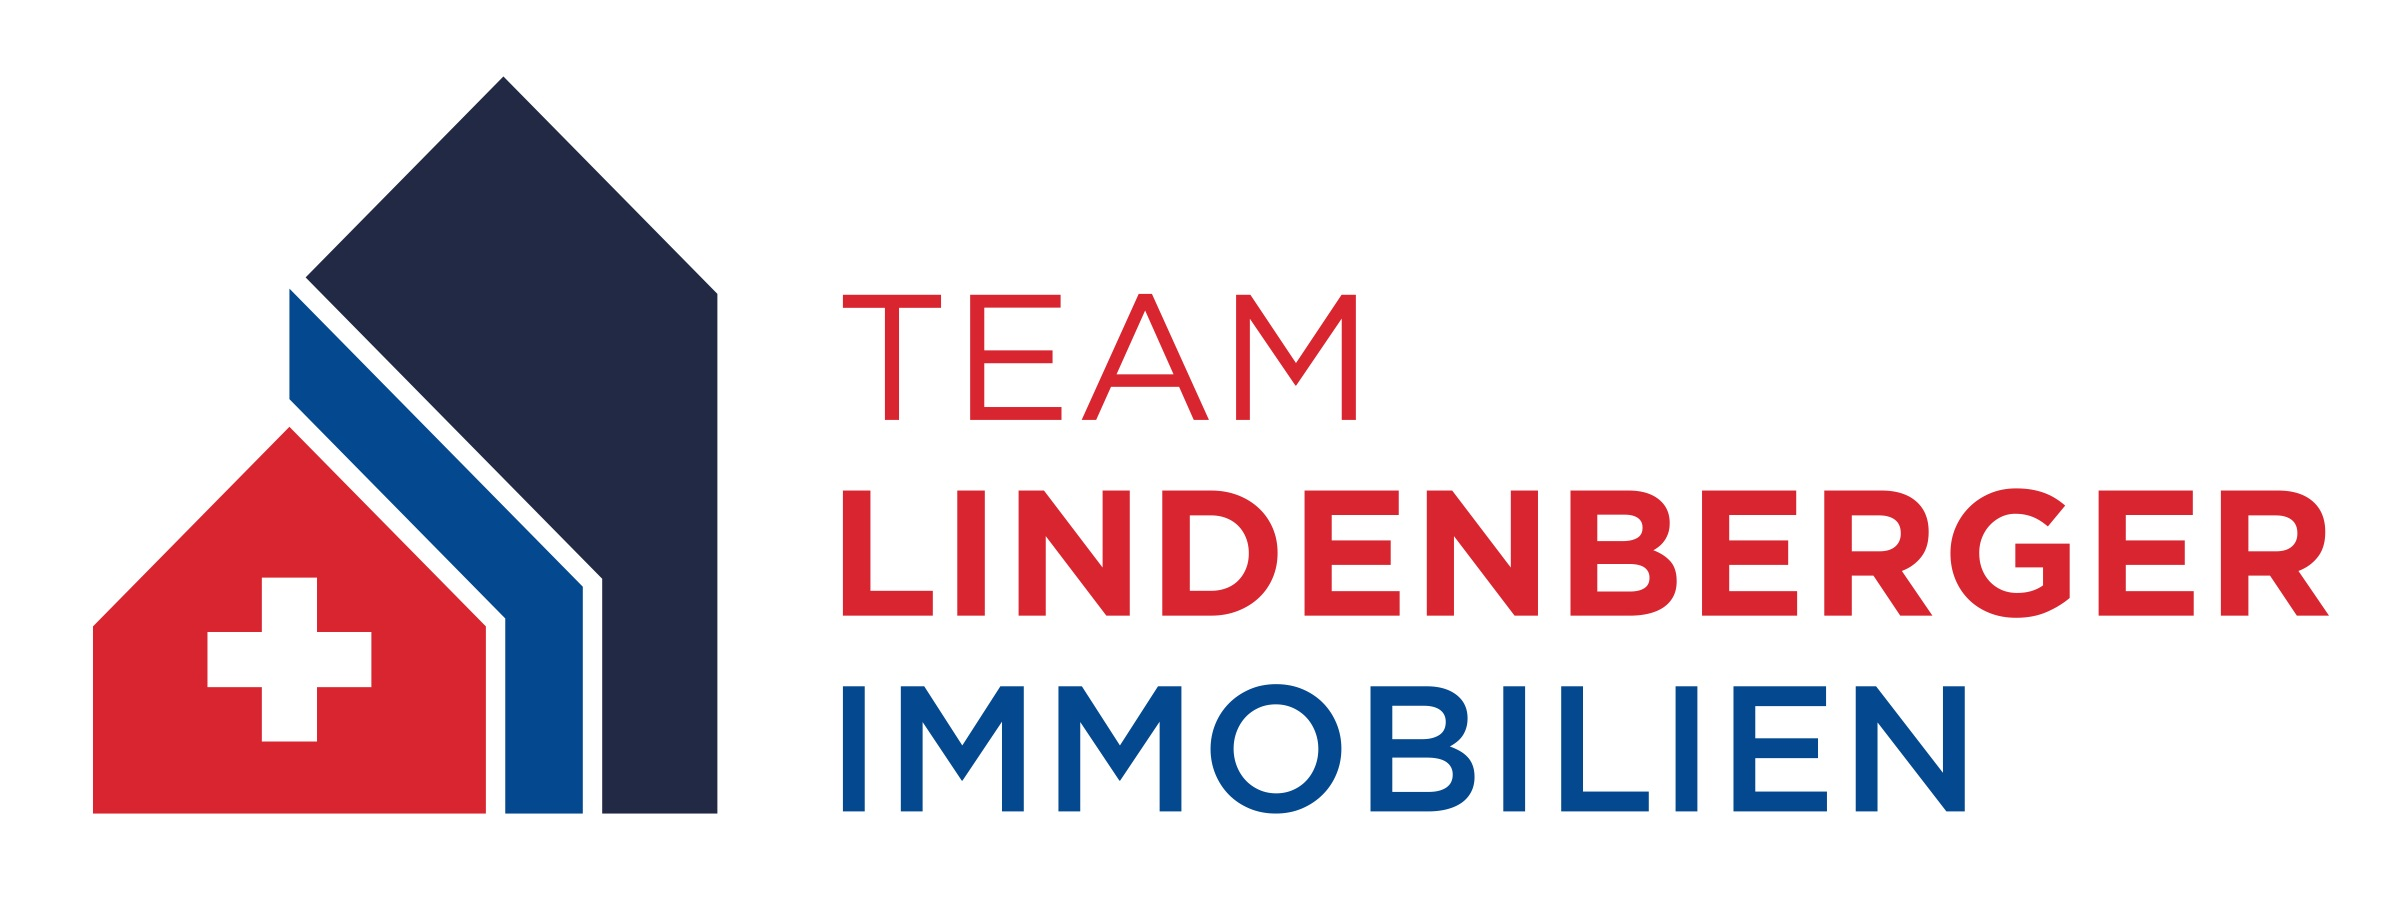 "<a href=""https://www.team-lindenberger.ch/"">Internetseite Team Lindenberger Immobilien</a>"